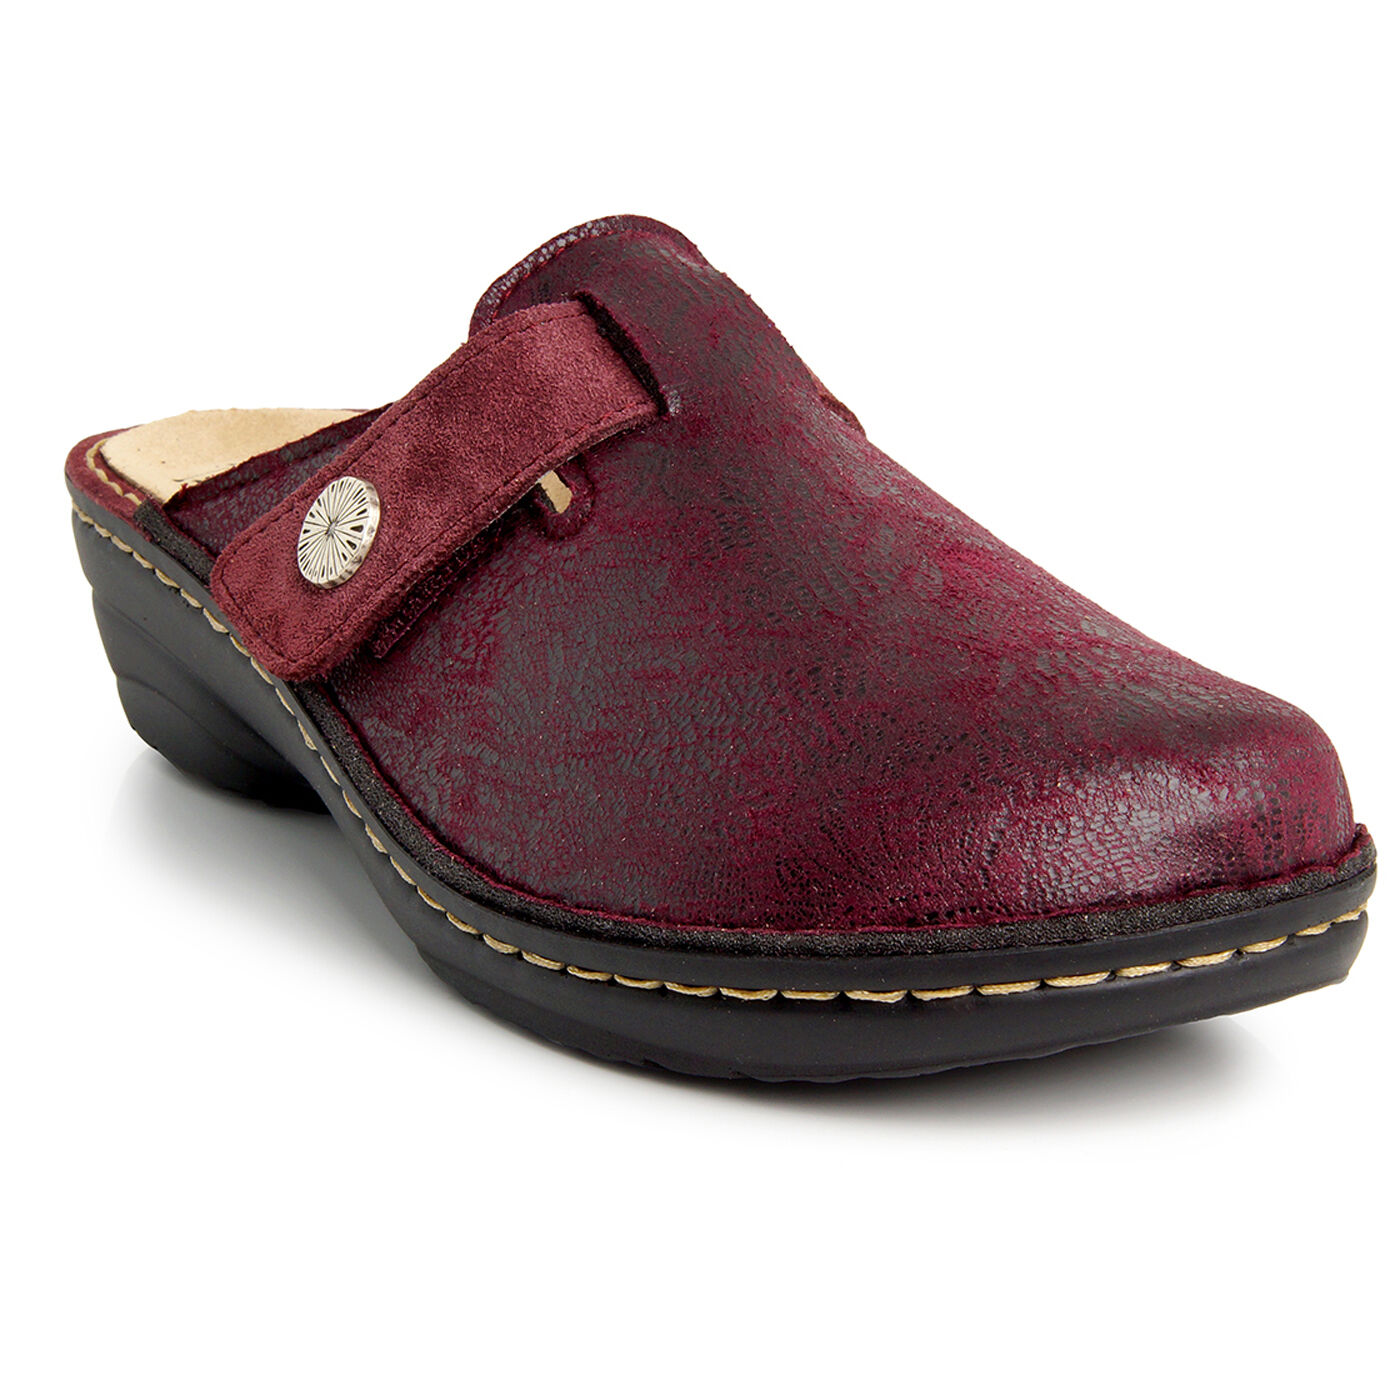 Batz IRENE 2 Raspberry Damenschuhe Leder Slip On Sandales Mules Clogs Sandales On Slippers Schuhes bf2427